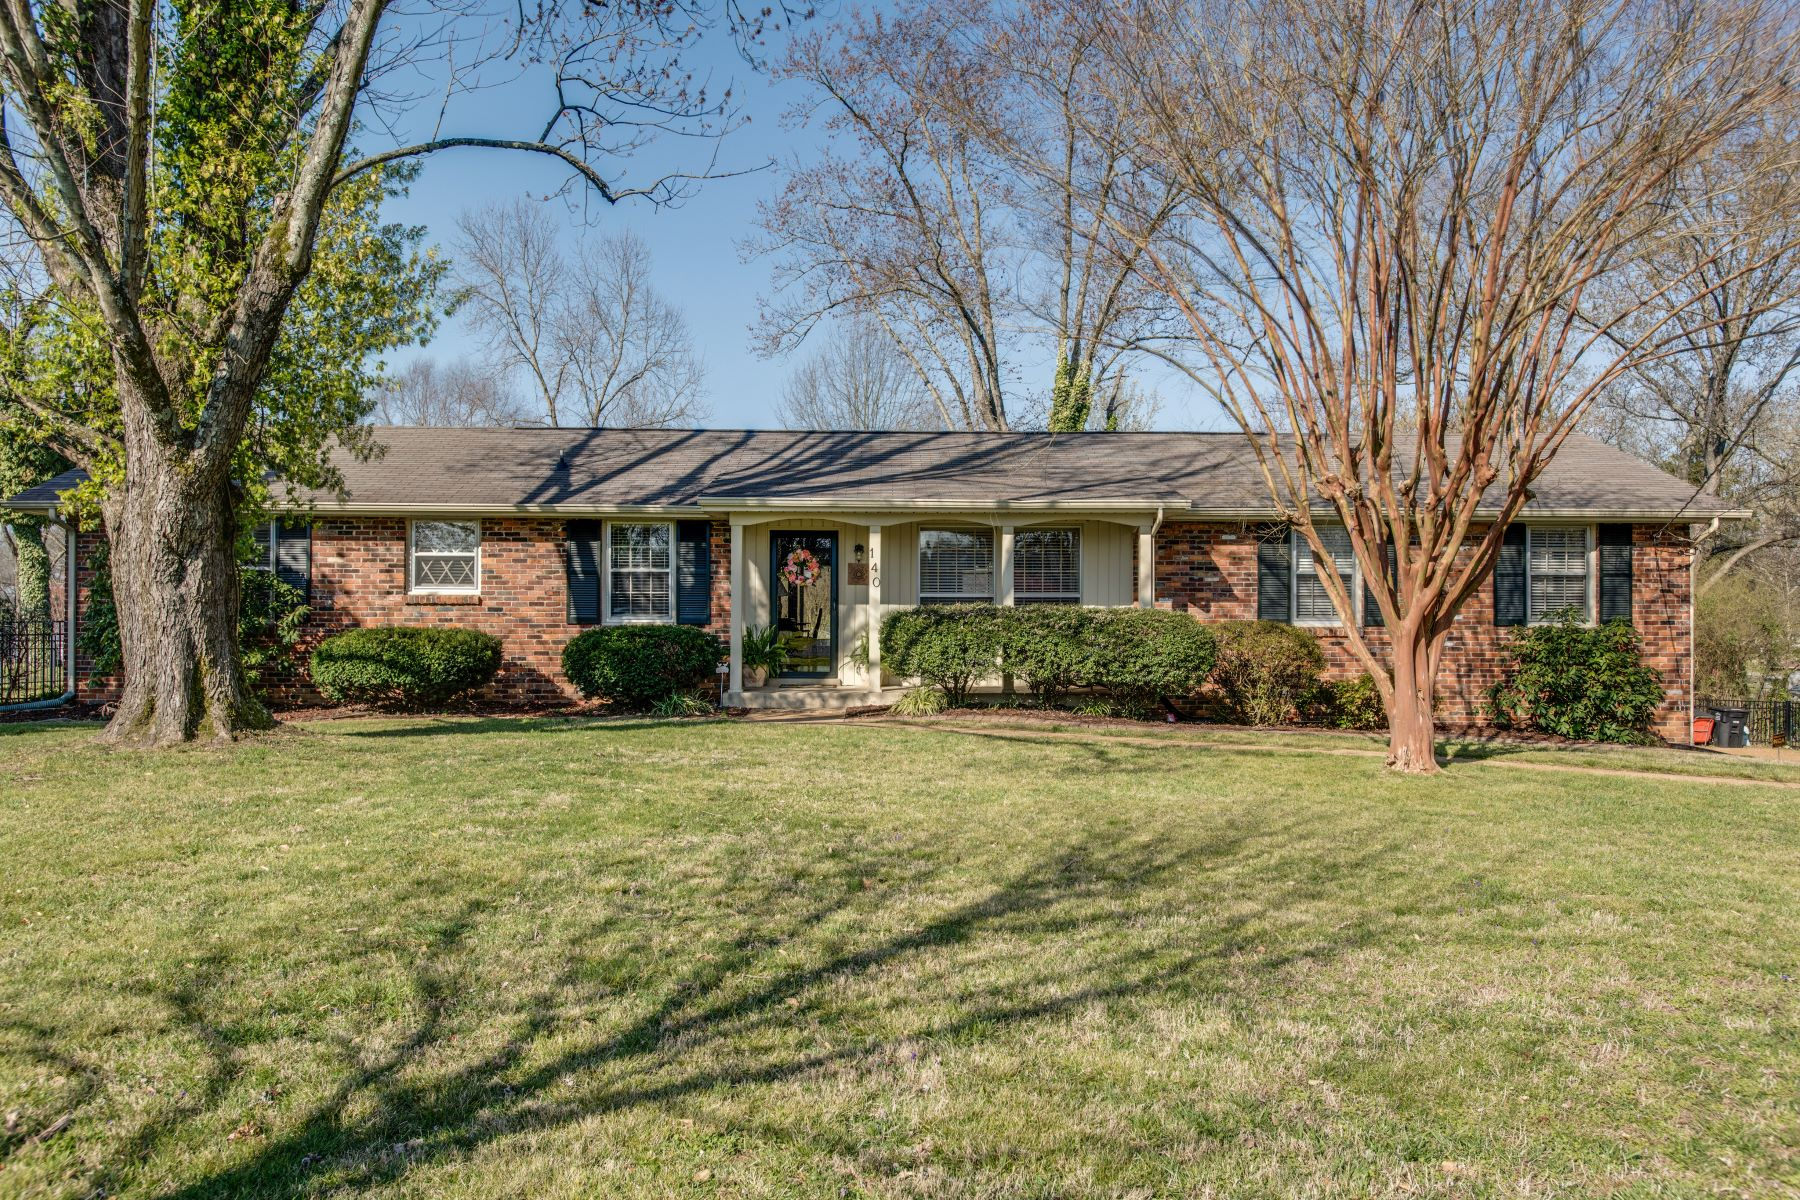 Single Family Home for Sale at Charming Home of Your Dreams! 140 Berrywood Drive Hendersonville, Tennessee 37075 United States